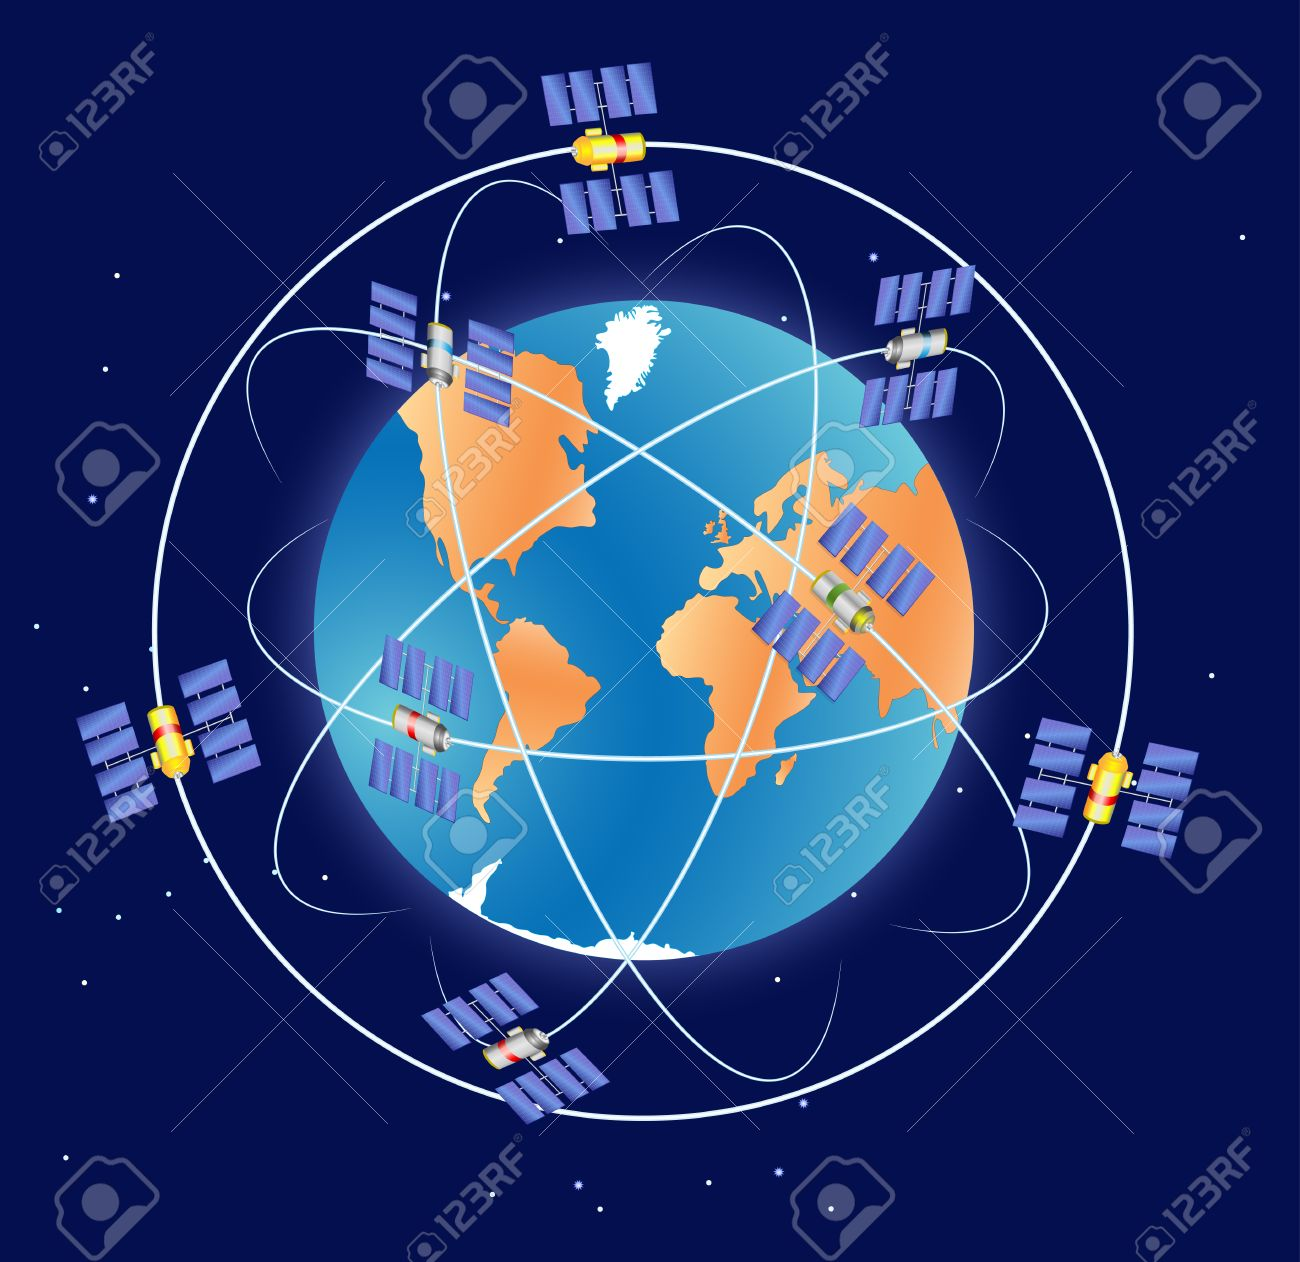 gps satellite in earth orbit global positioning system royalty free